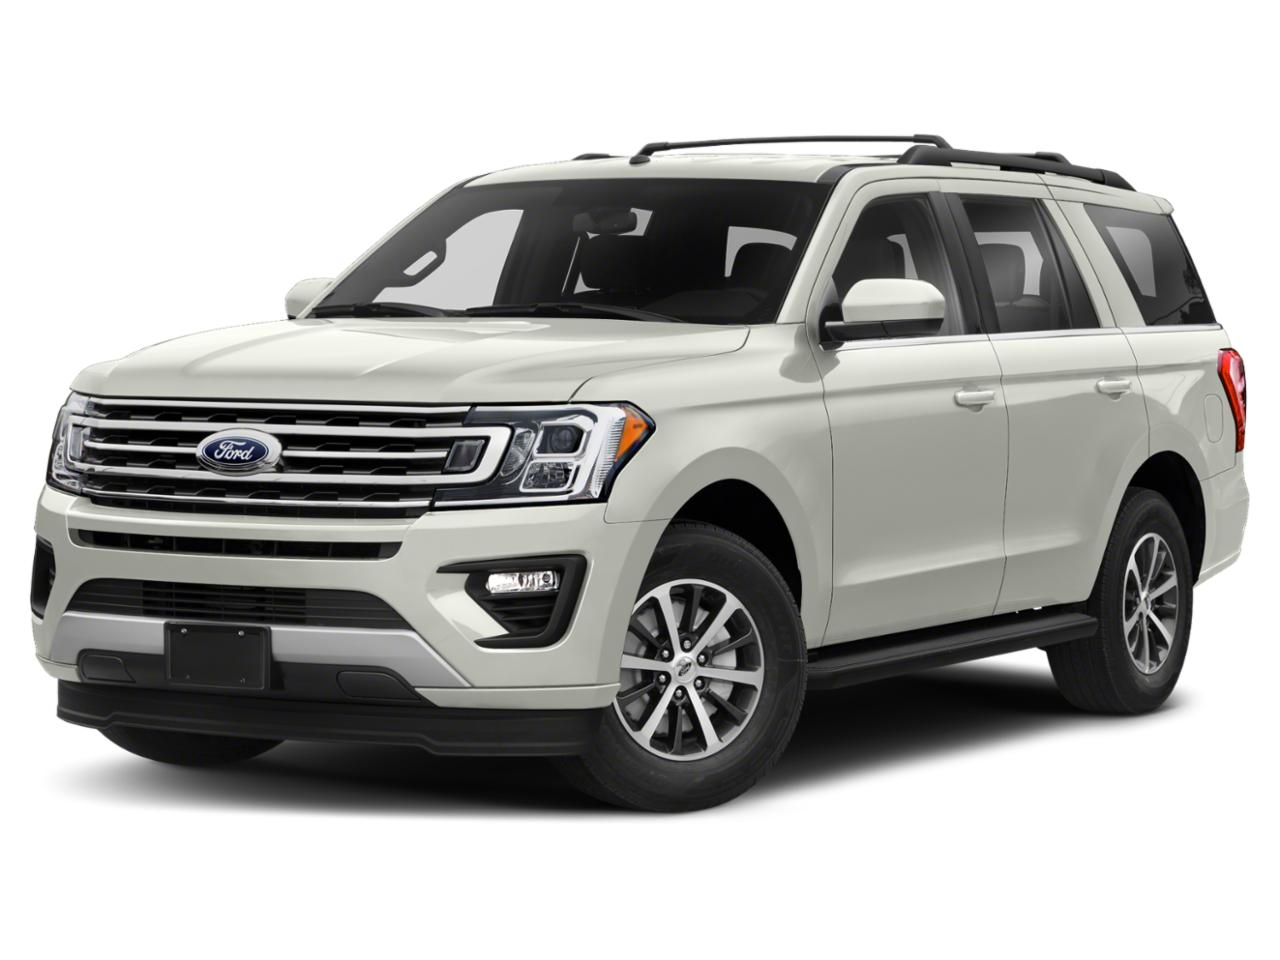 2018 Ford Expedition Vehicle Photo in CHARLOTTE, NC 28212